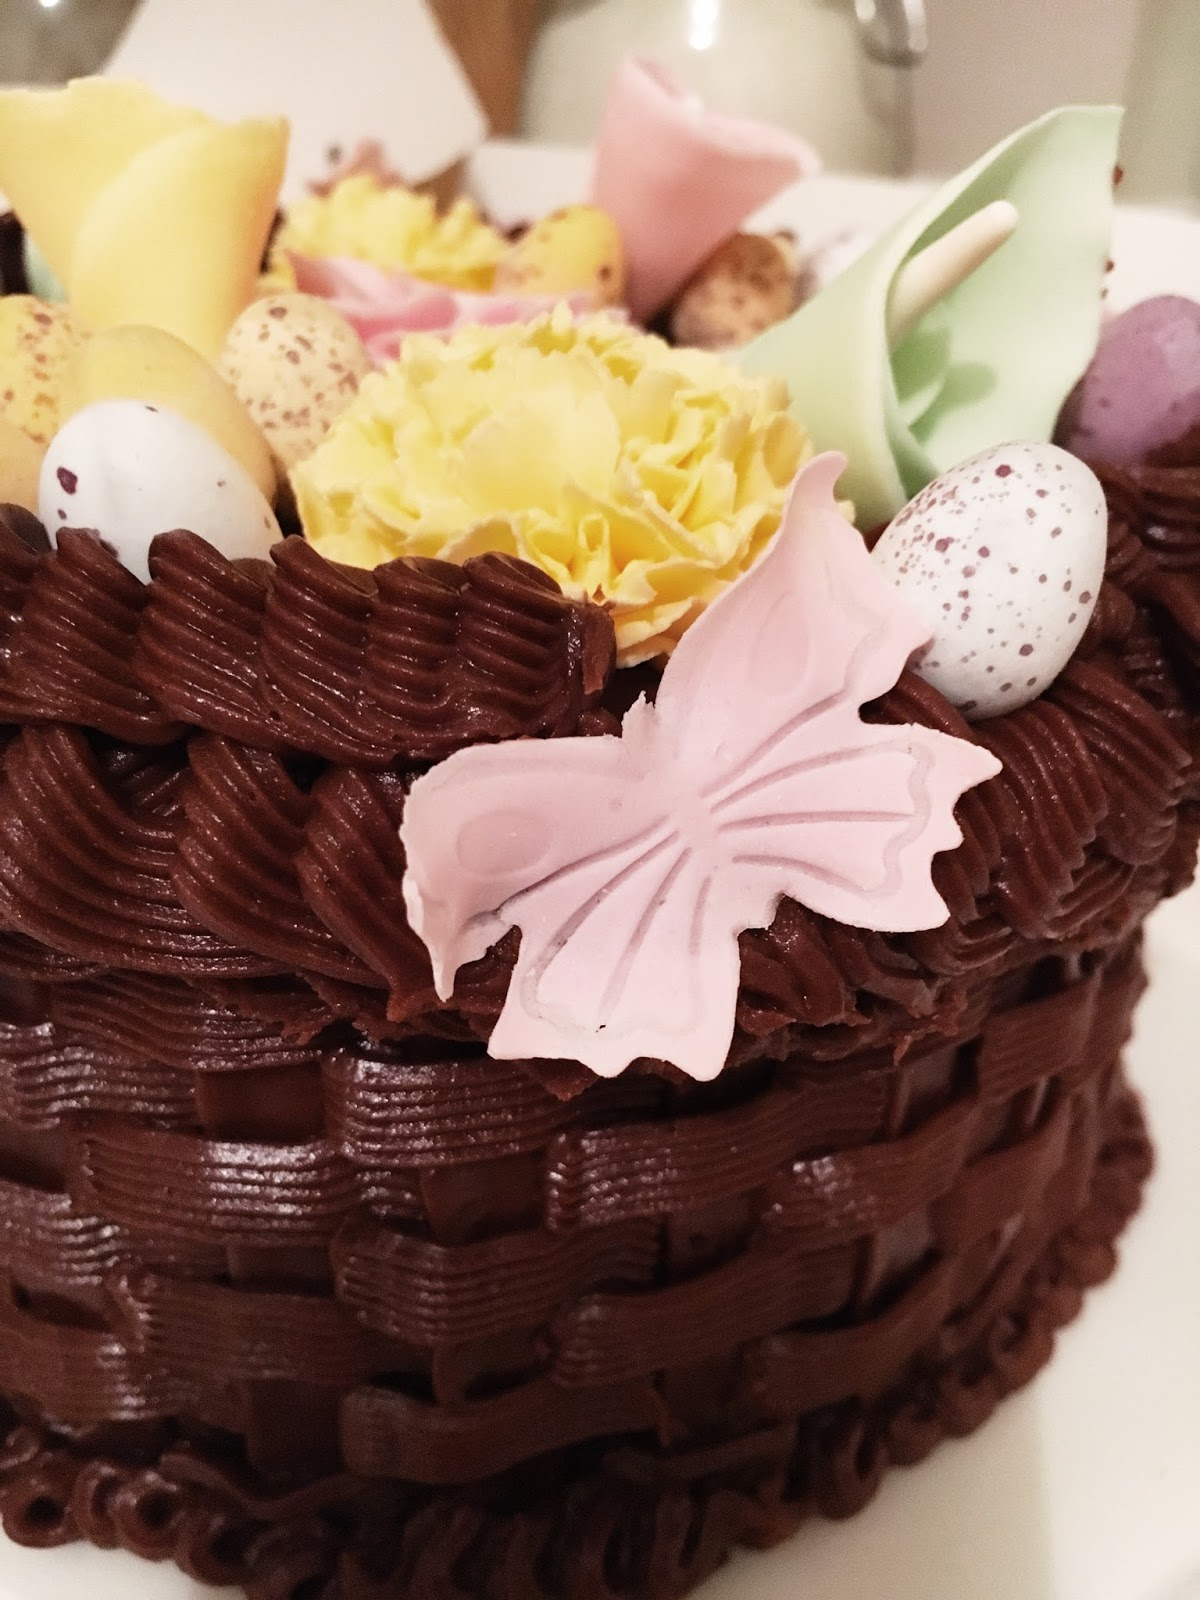 My Cake Decorating Course